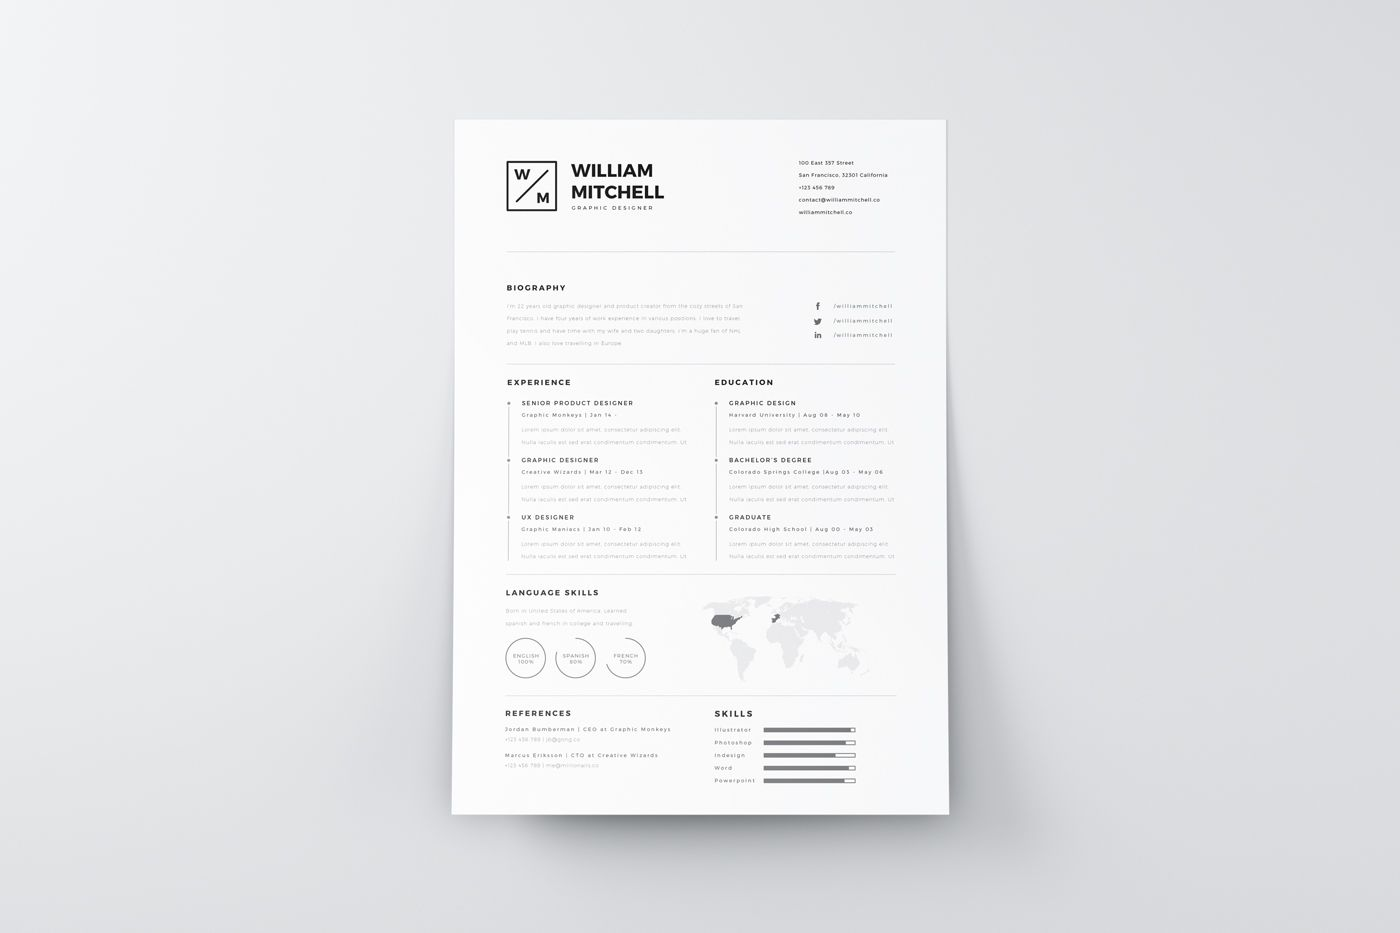 Free Resume Template In A Perfect Minimalistic And Clean Premium